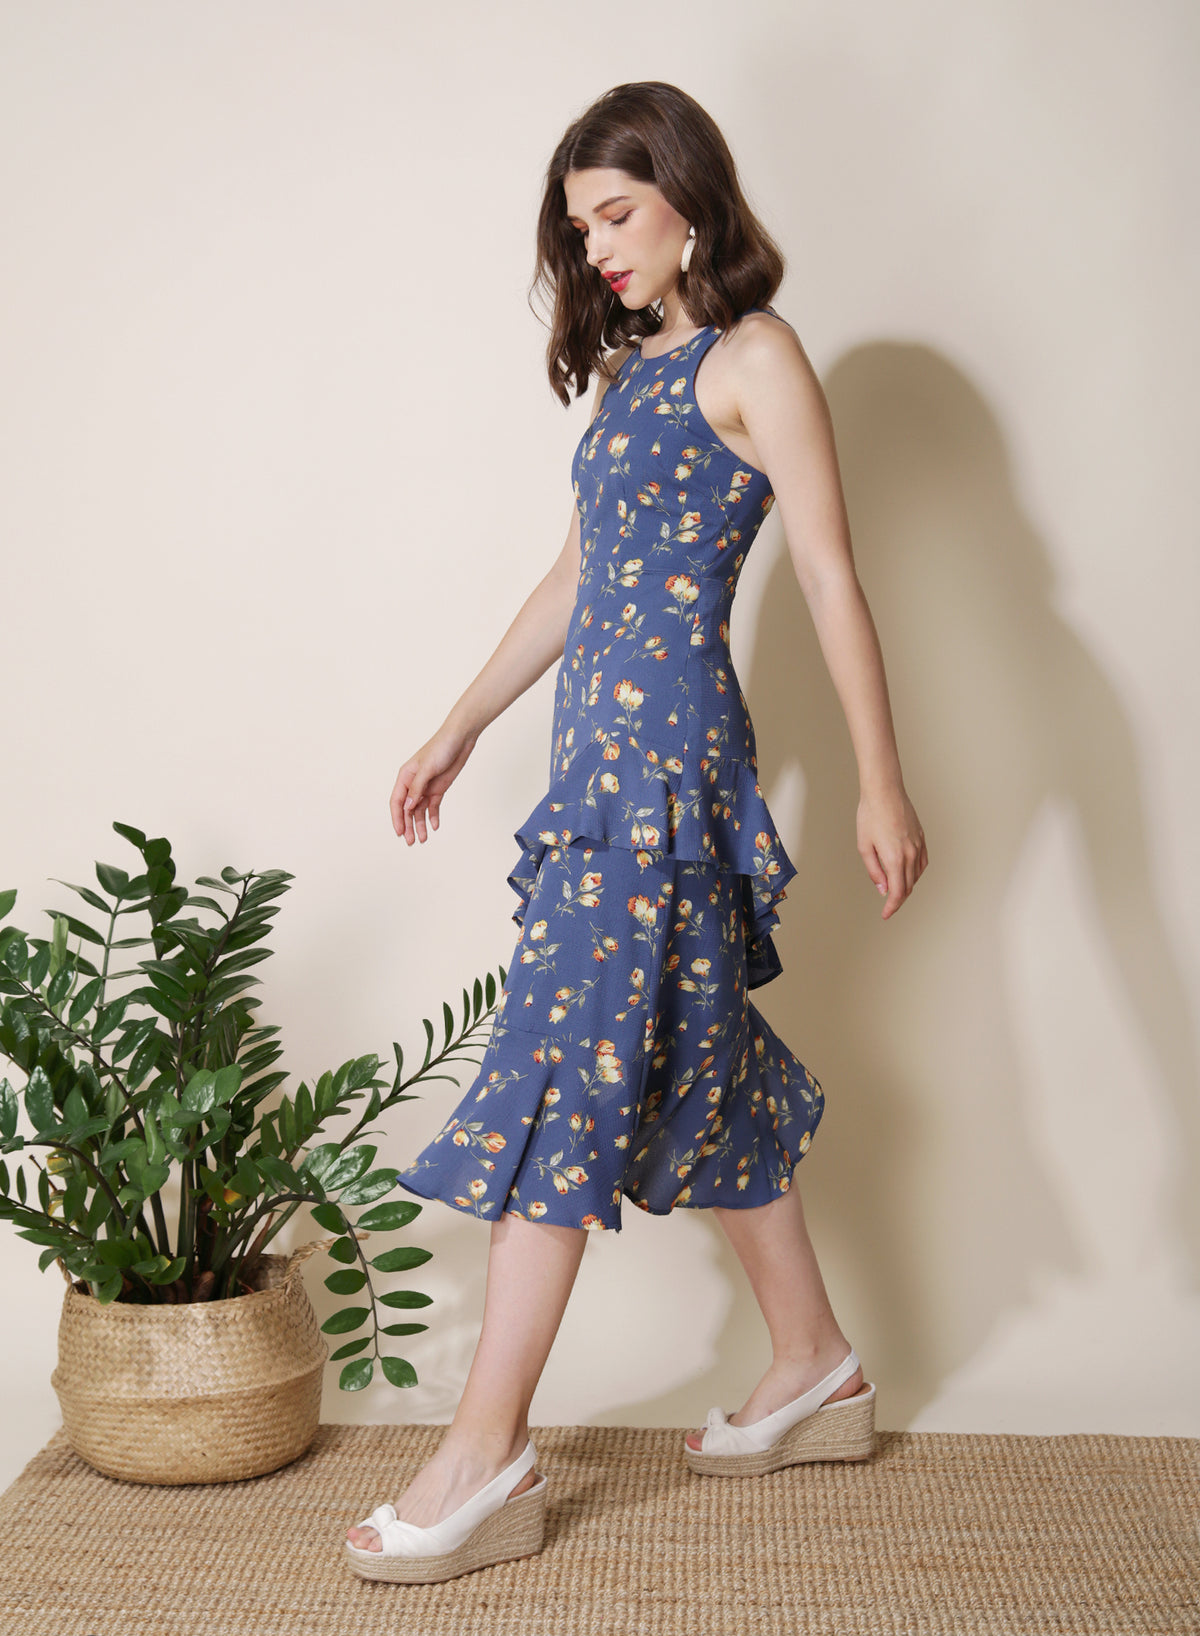 Getaway Ruffled Floral Dress (Azure) at $ 43.50 only sold at And Well Dressed Online Fashion Store Singapore